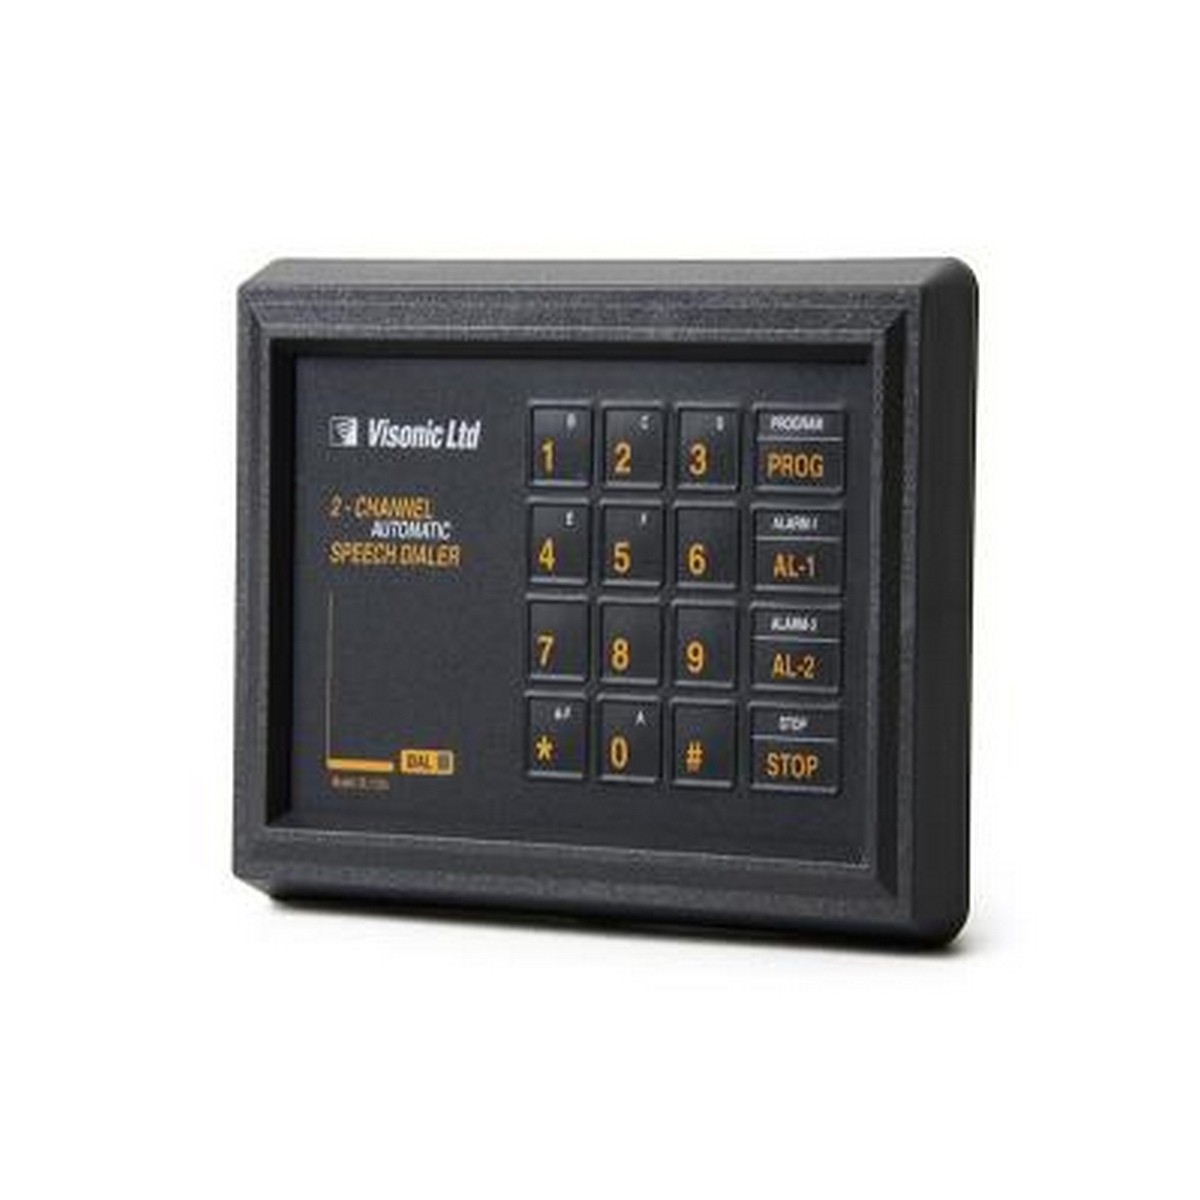 Visonic DL-125C  2 Channel programmable voice dialer